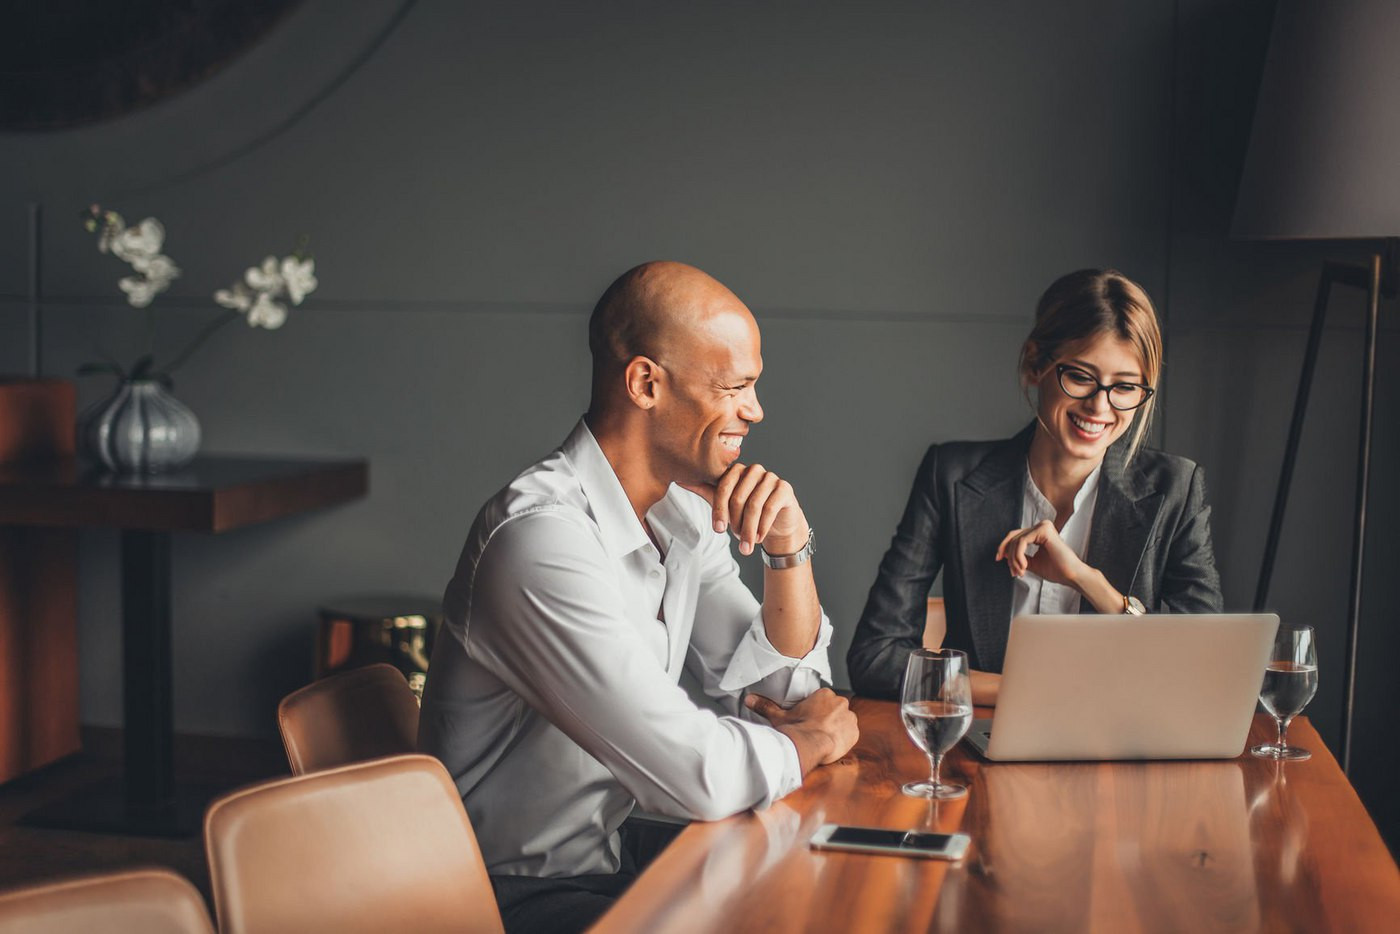 How to Ask Your Boss for Time (and Resources) to Attend Coach Training